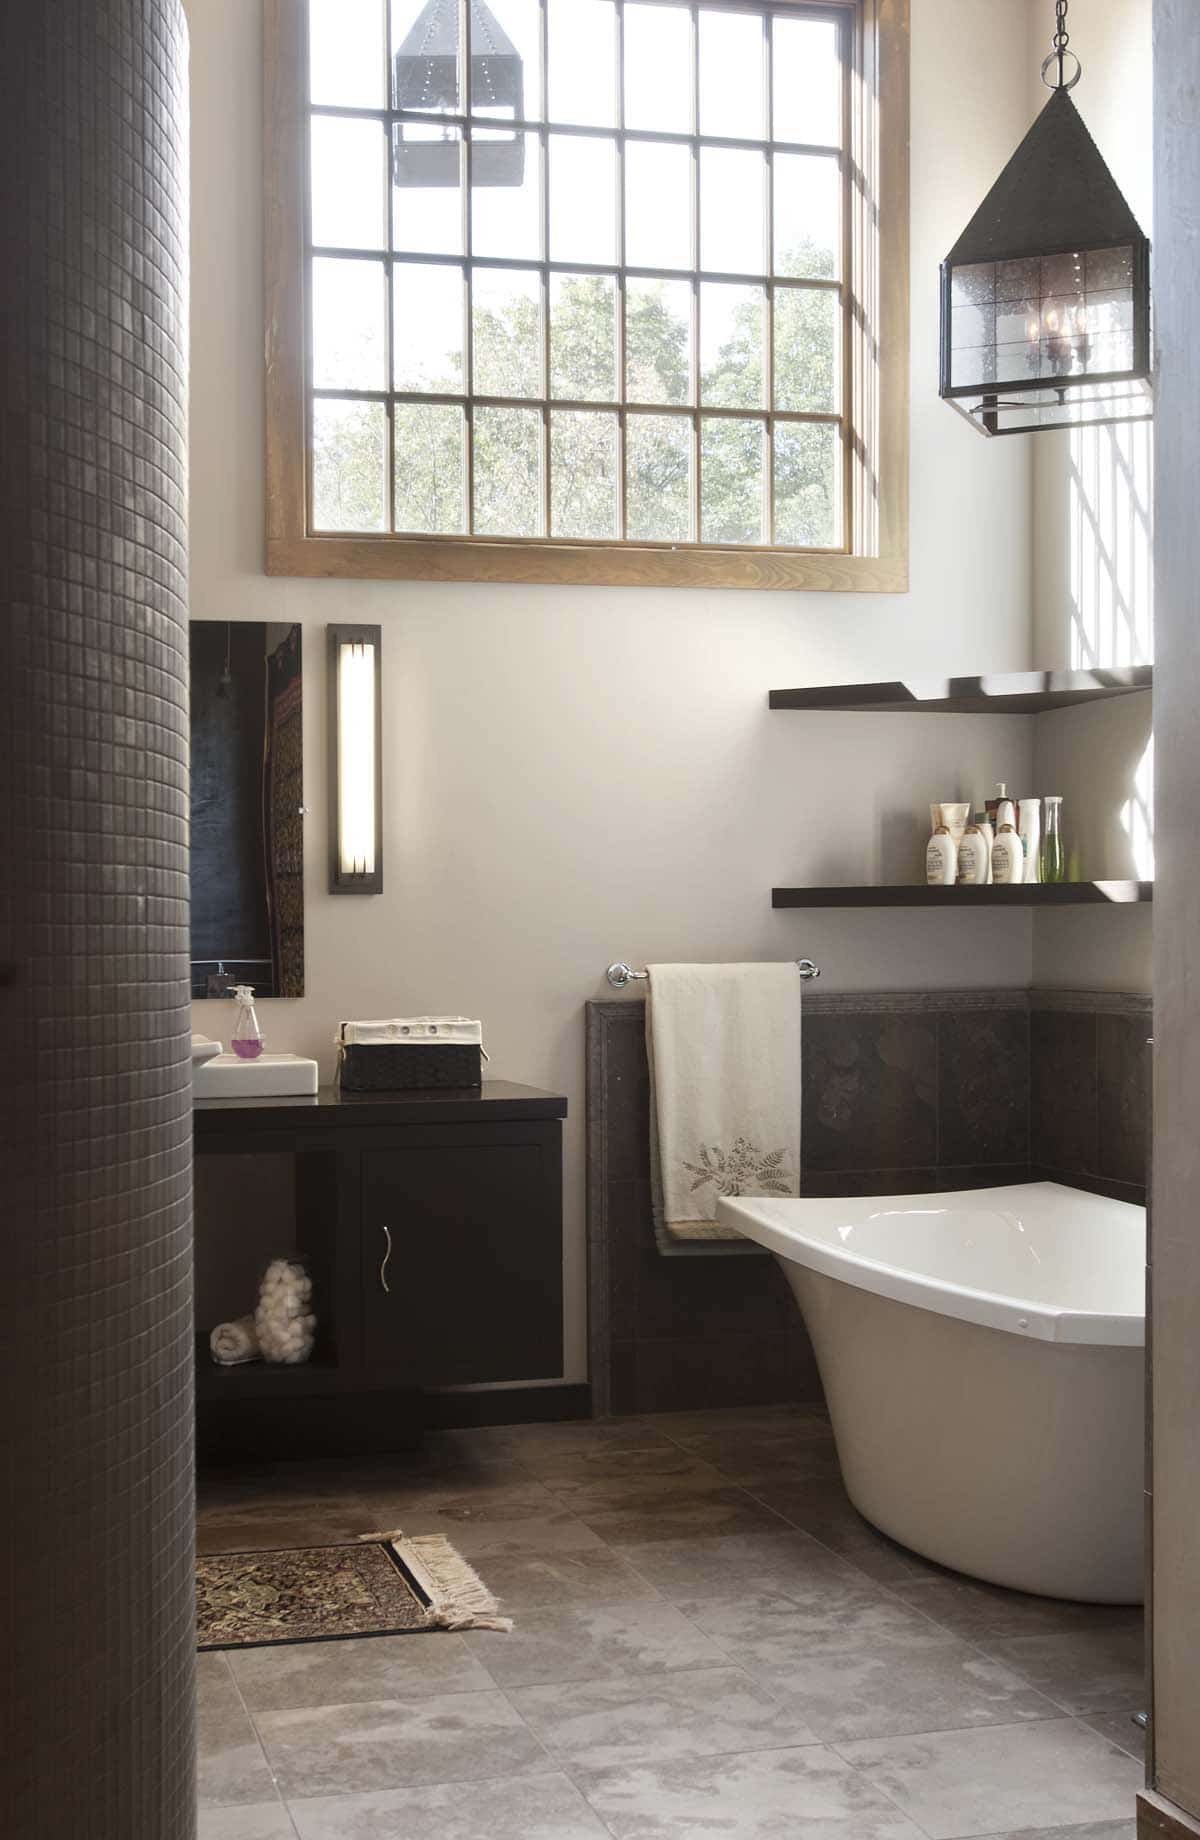 Rustic Bathroom Freestanding Tub Top Kat Photo